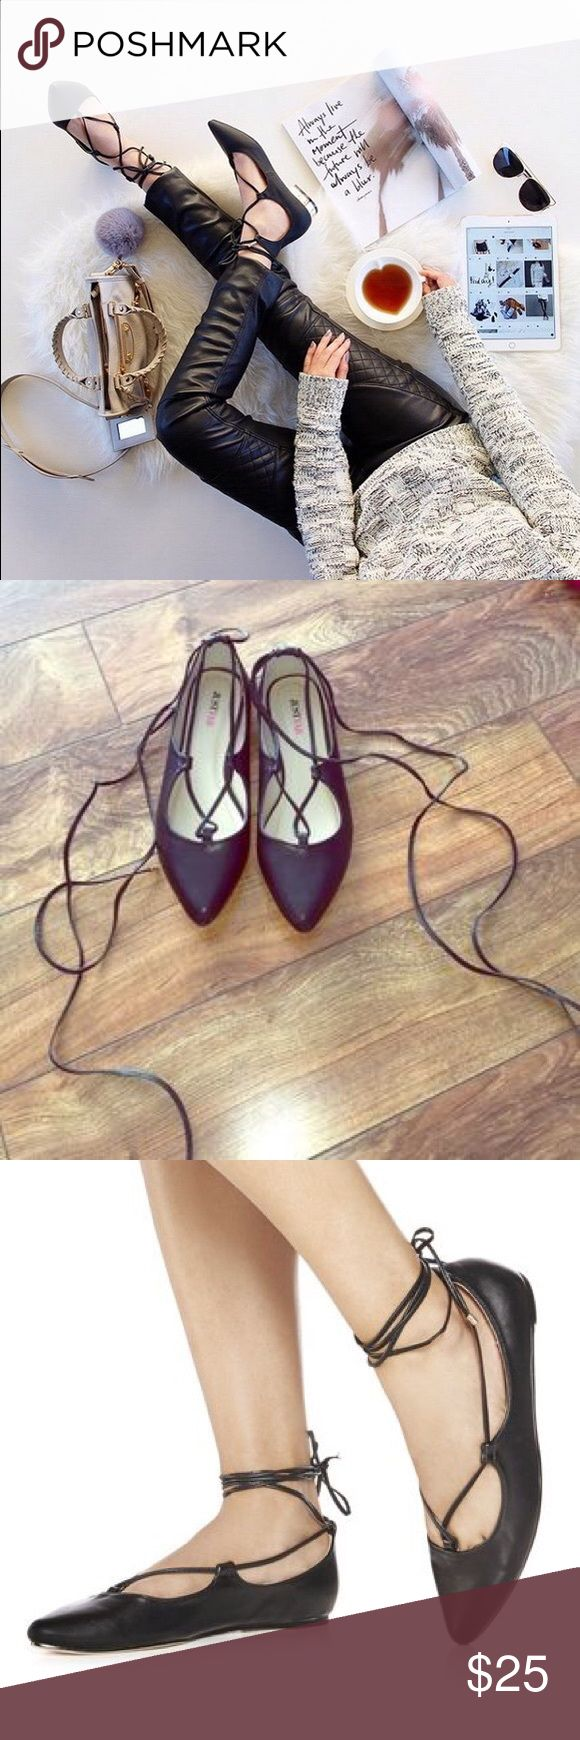 Trendy just fab Black lace up ballerina flats Brand new never worn, black lace up flats. No box. True to size 7 JustFab Shoes Flats & Loafers